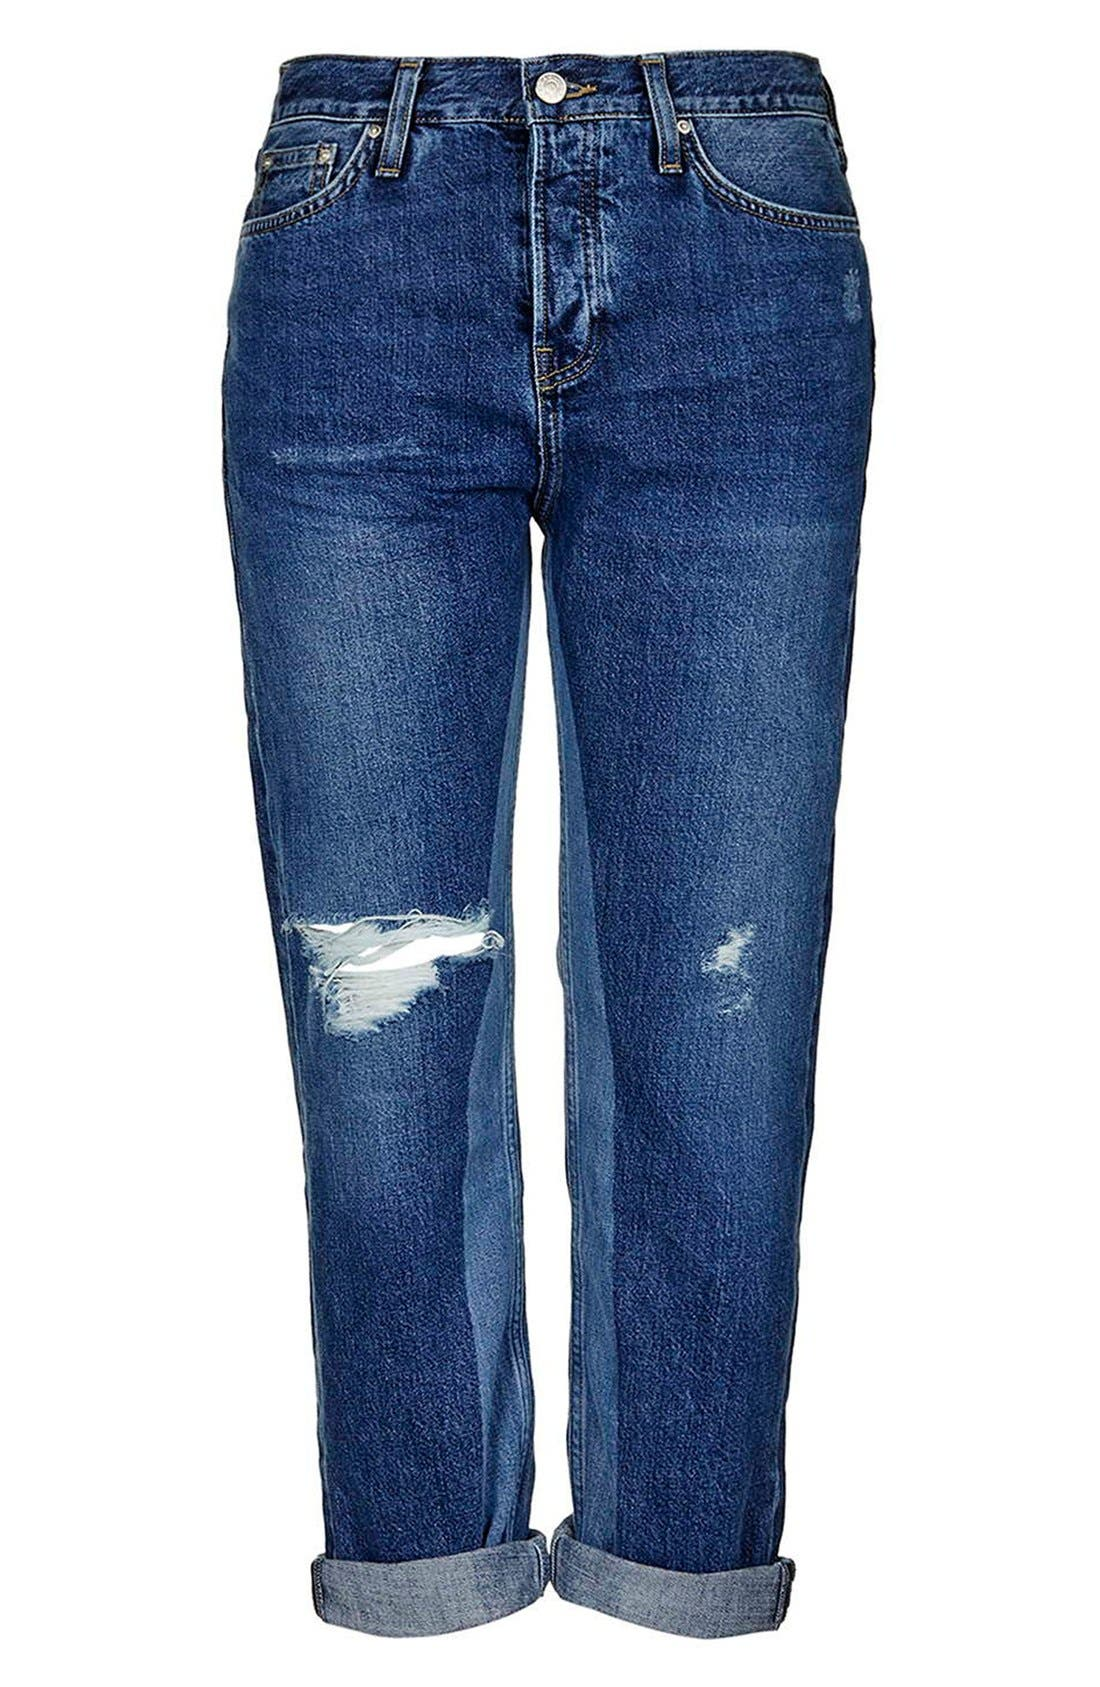 Alternate Image 5  - Topshop 'Patch' Two Tone High Rise Boyfriend Jeans